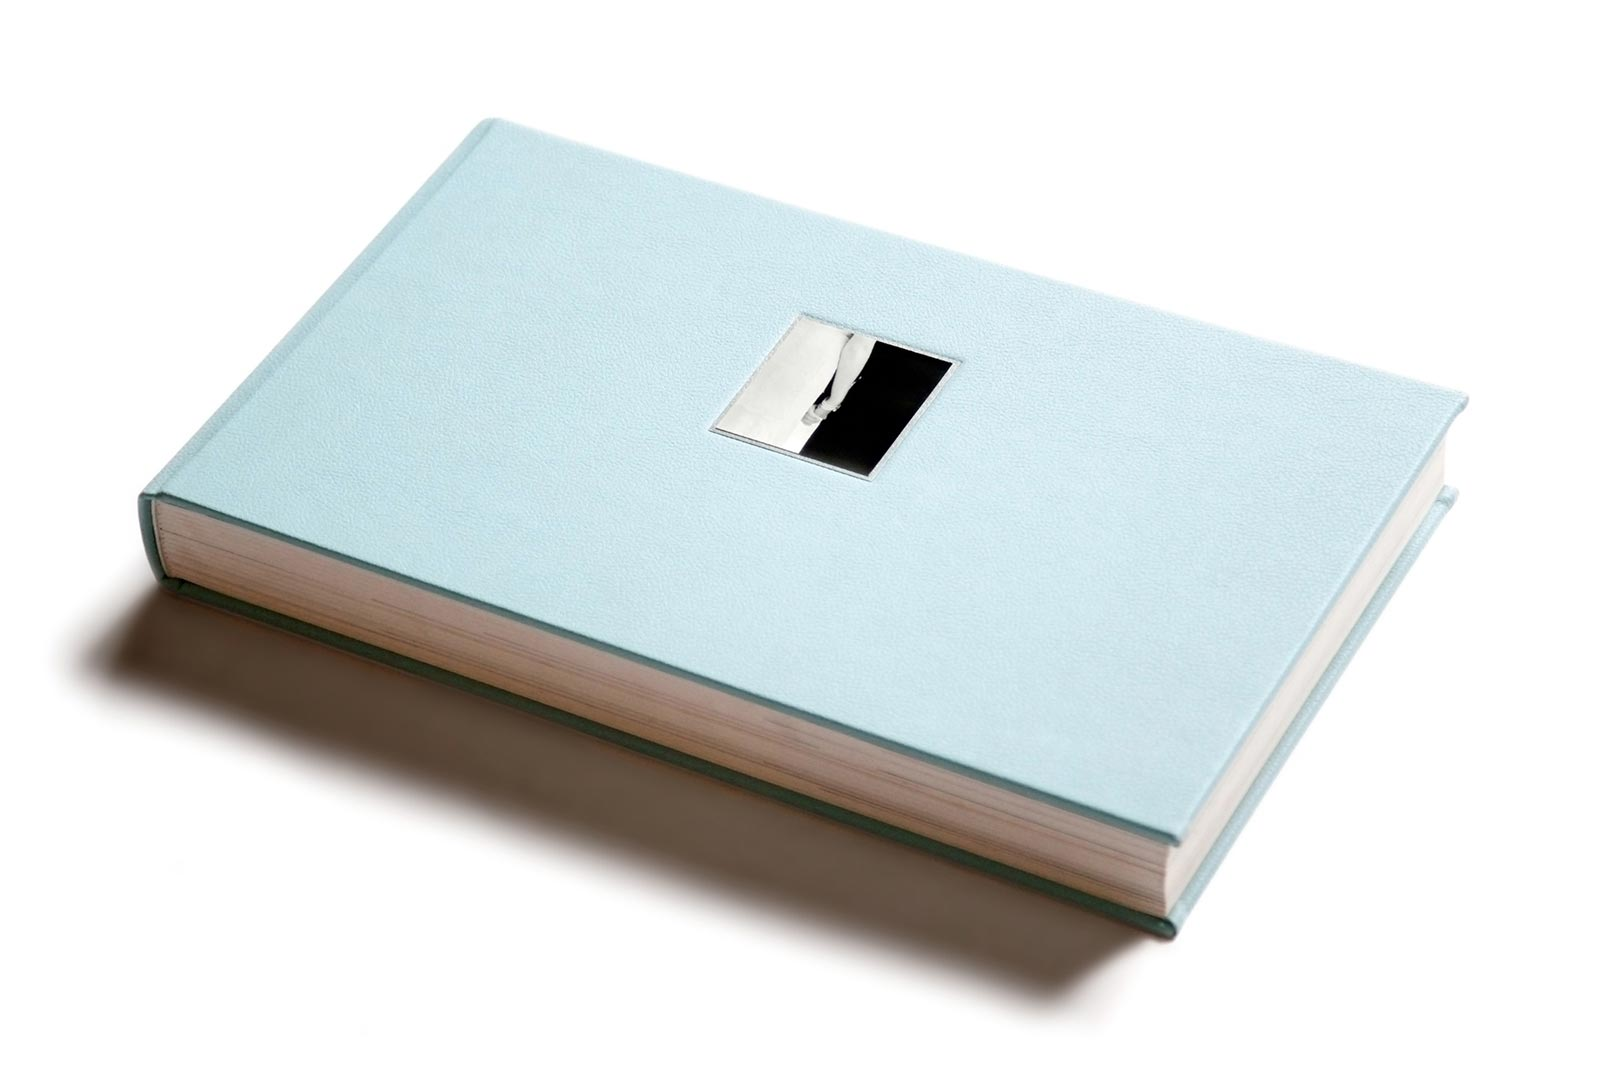 Powder blue micro leather cover